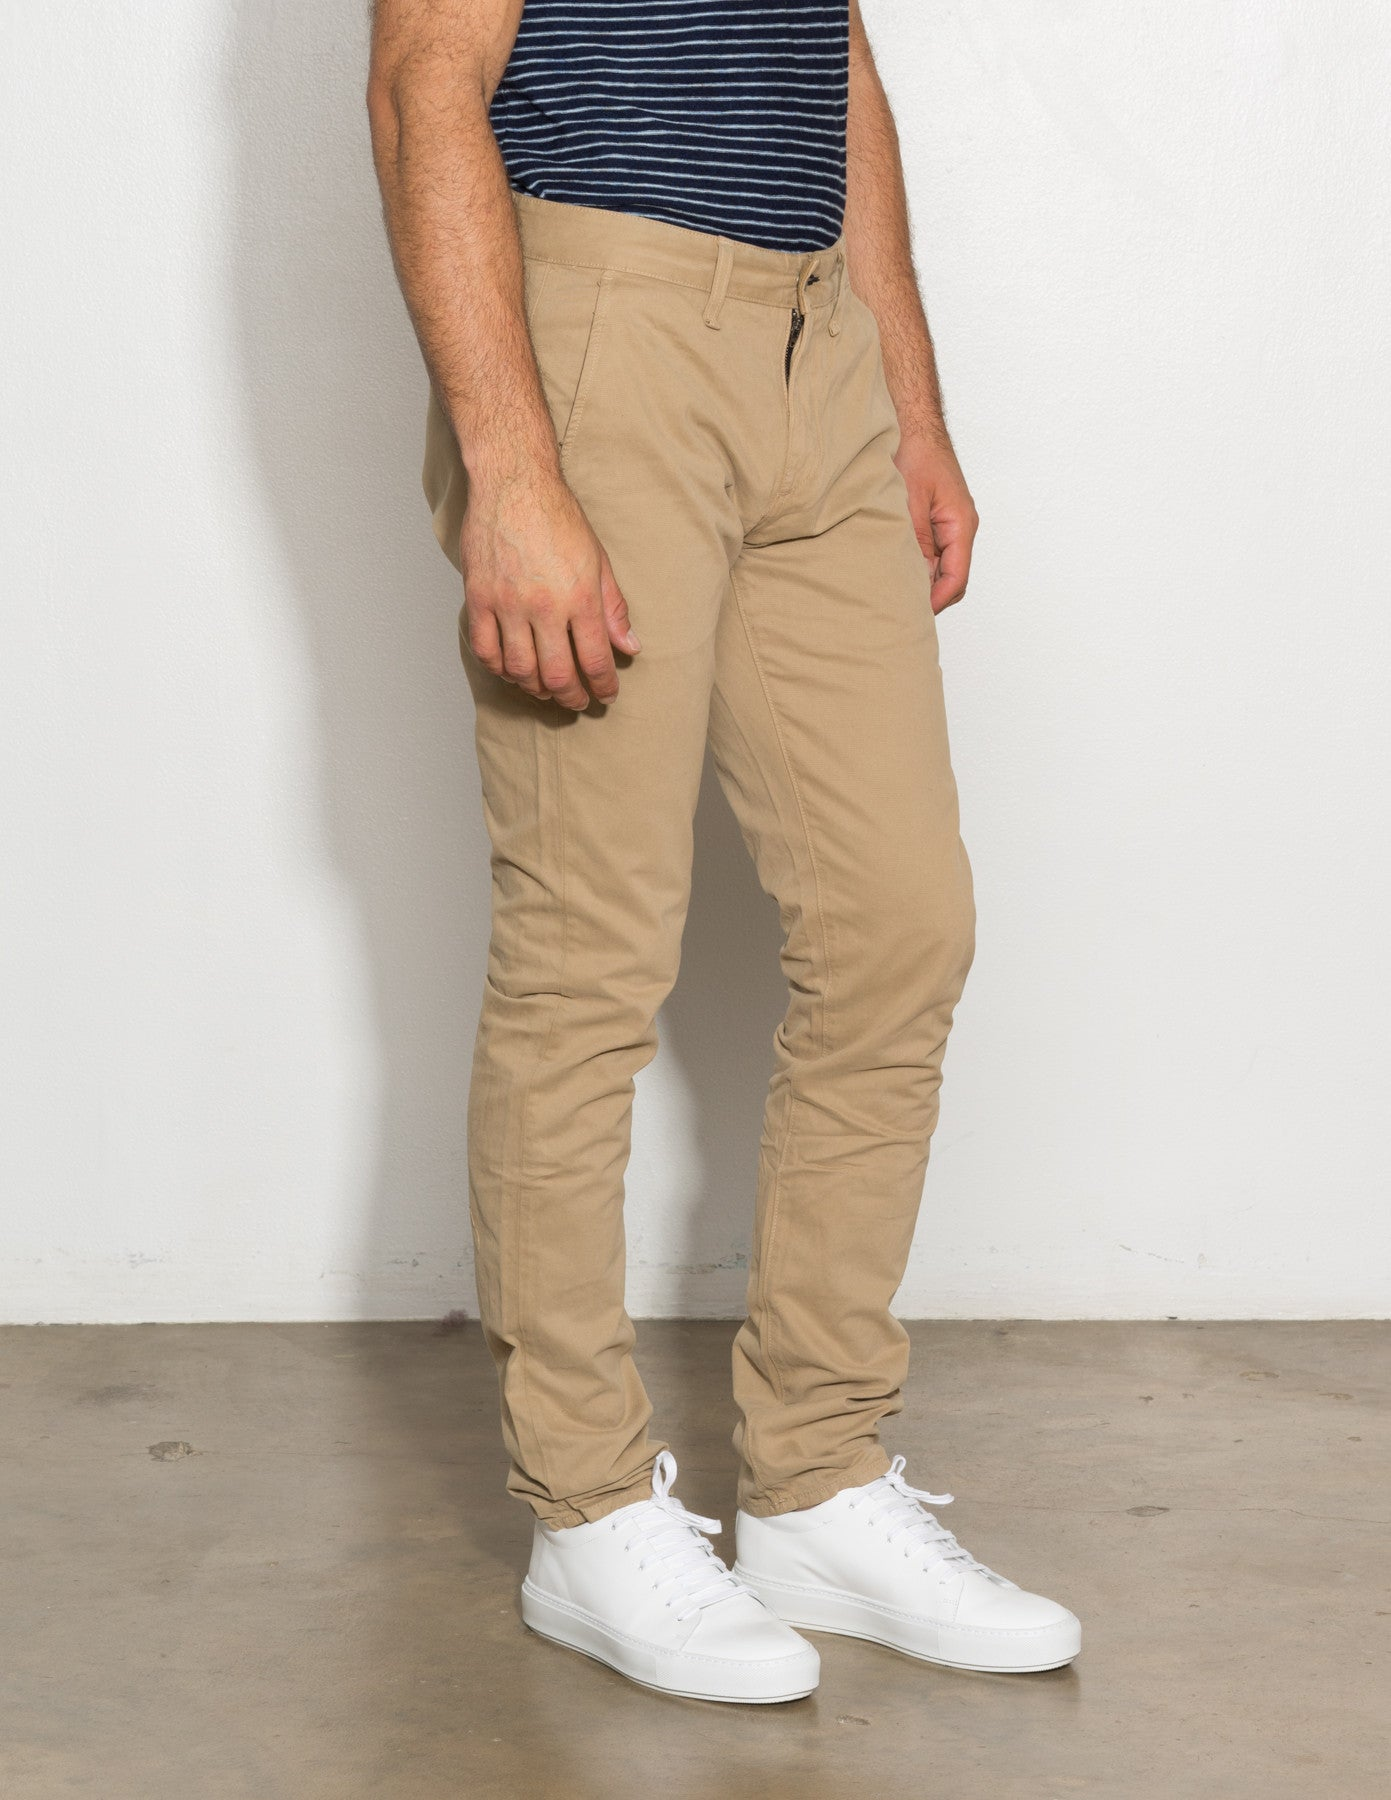 Fit 2 Low Rise Chino